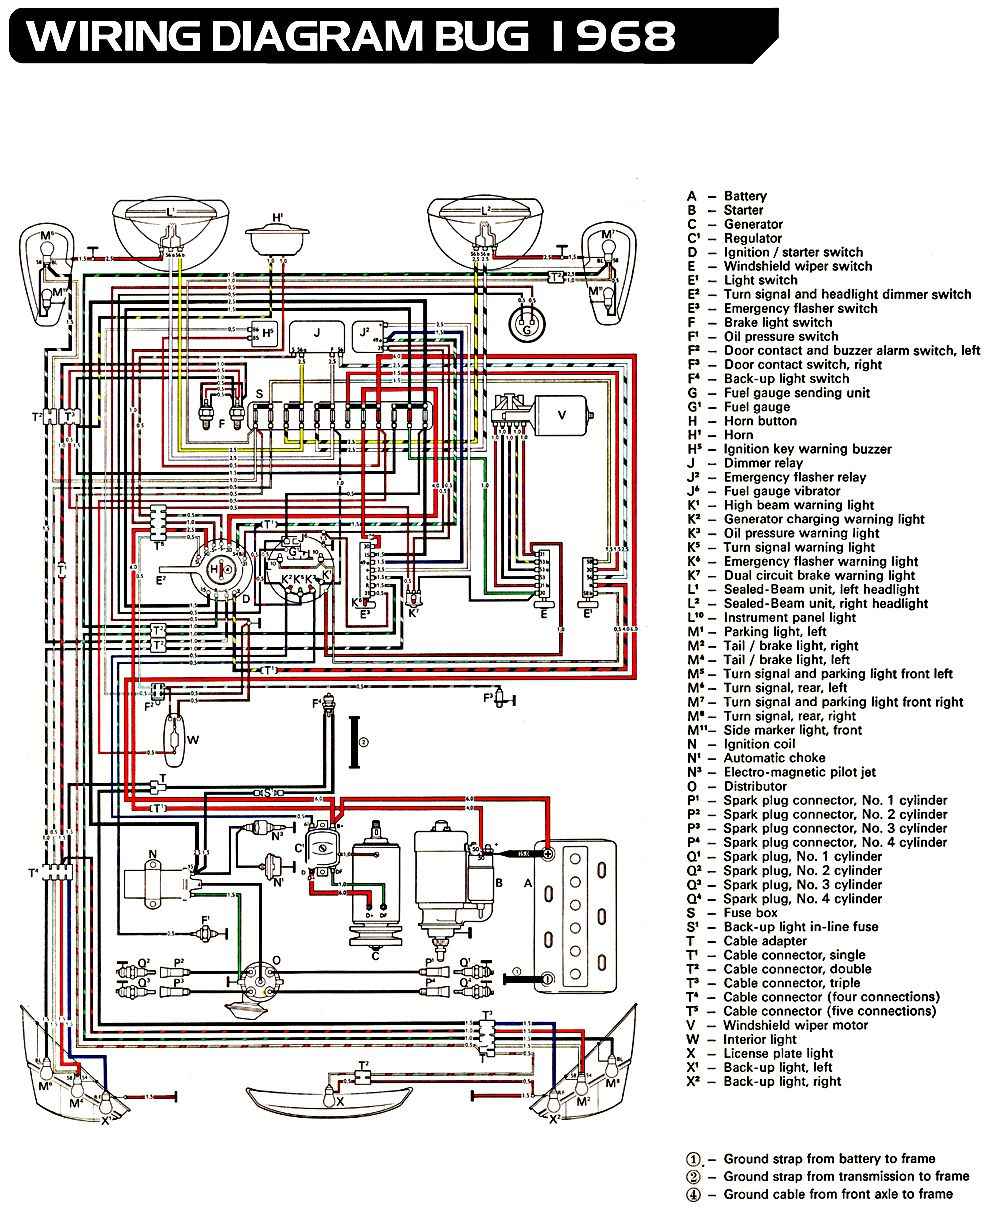 3a1908112d3826270ed5e3be362292bf vw bug ignition wiring diagram 73 vw wiring diagram free 1969 vw squareback wiring diagram at webbmarketing.co